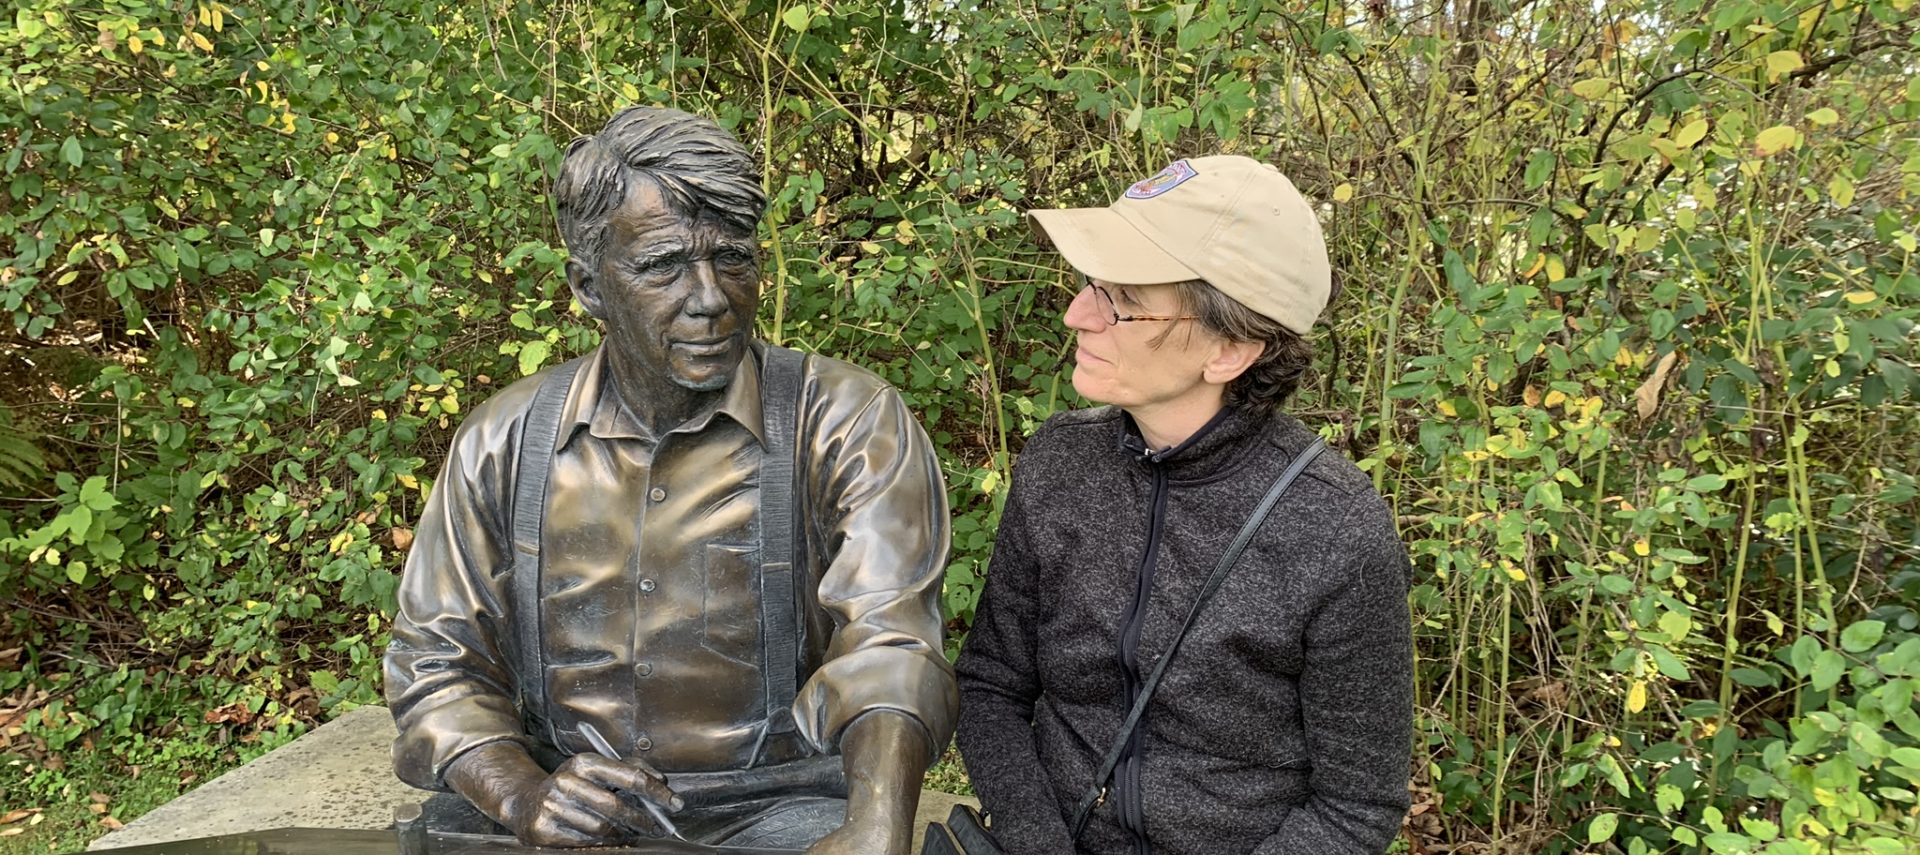 Statue of Robert Frost with MaryAnn sitting next to statute